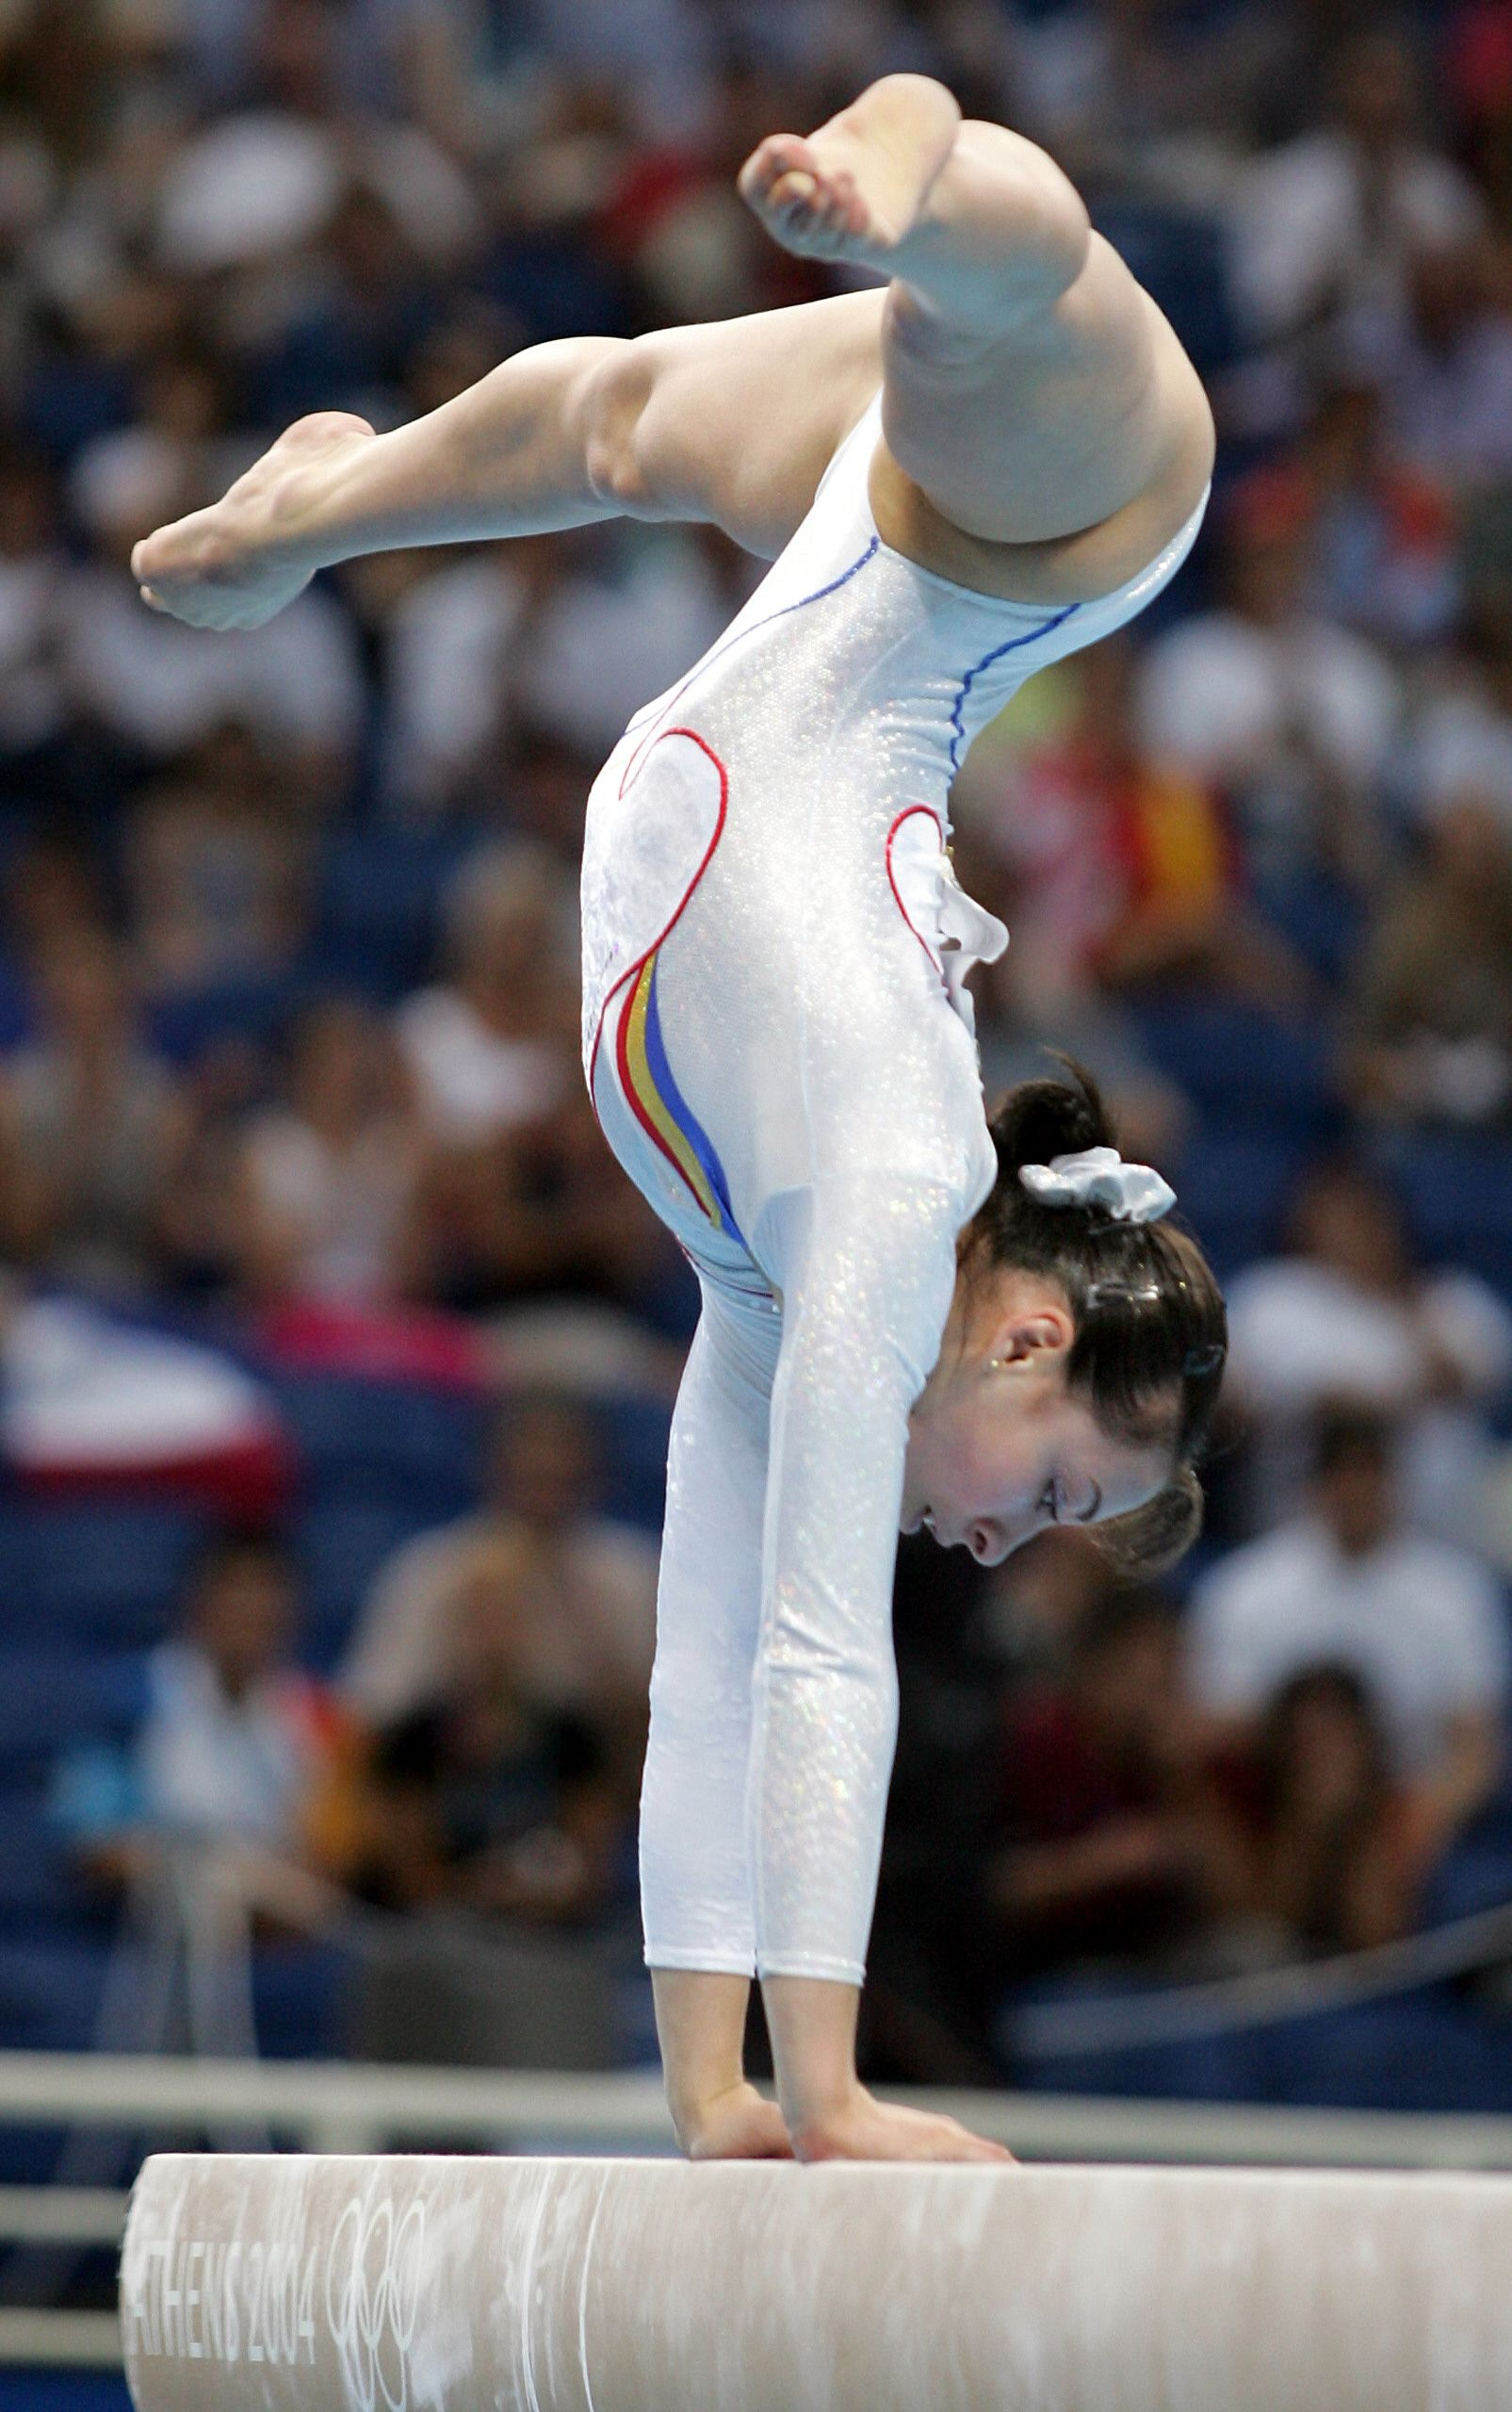 Romanian Women Gymnast Catalina Ponor 43